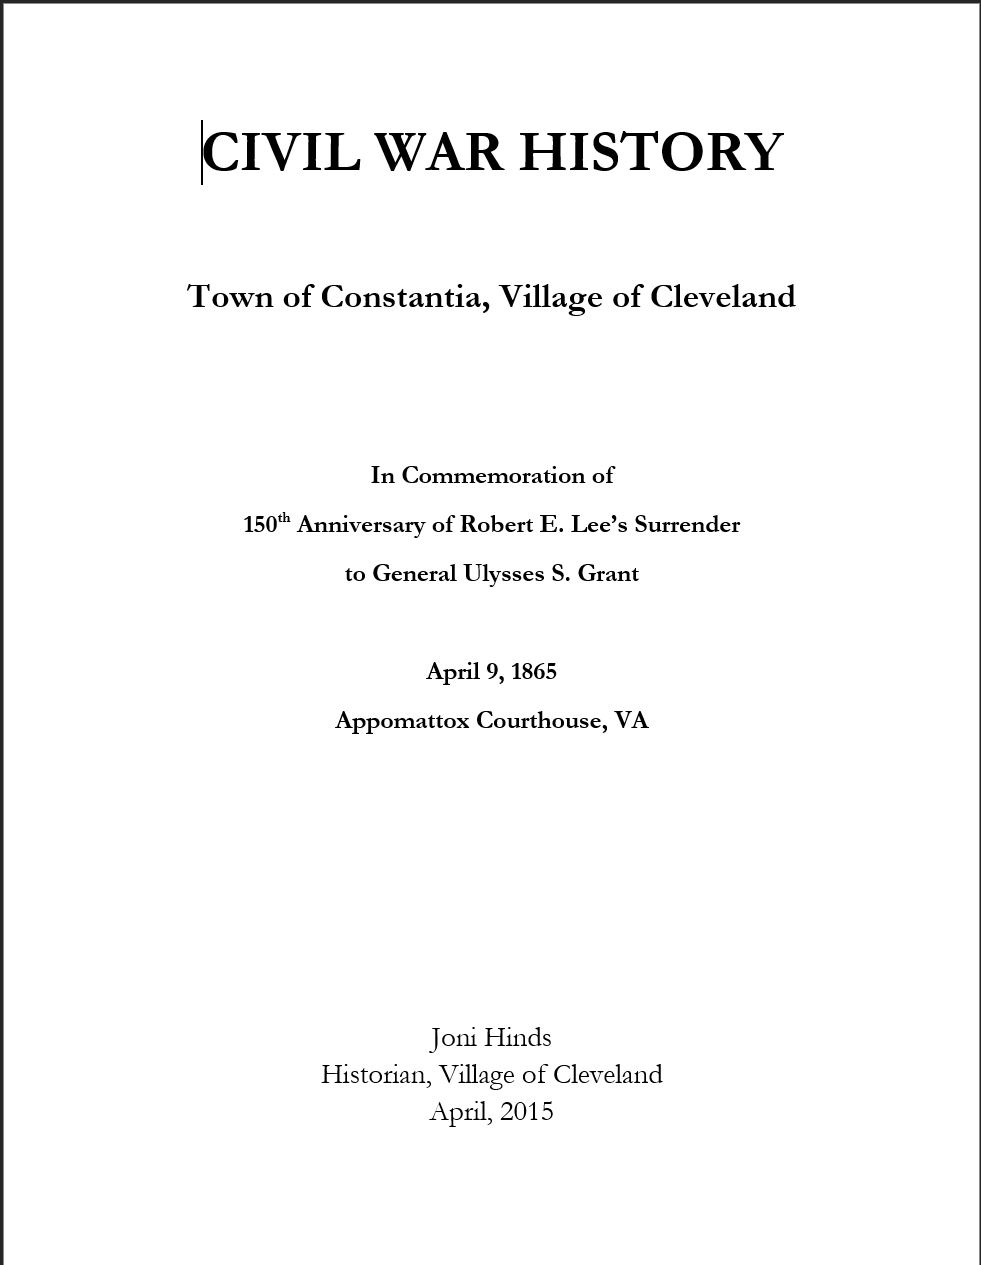 Civil War History, Town of Constantia, Village of Cleveland